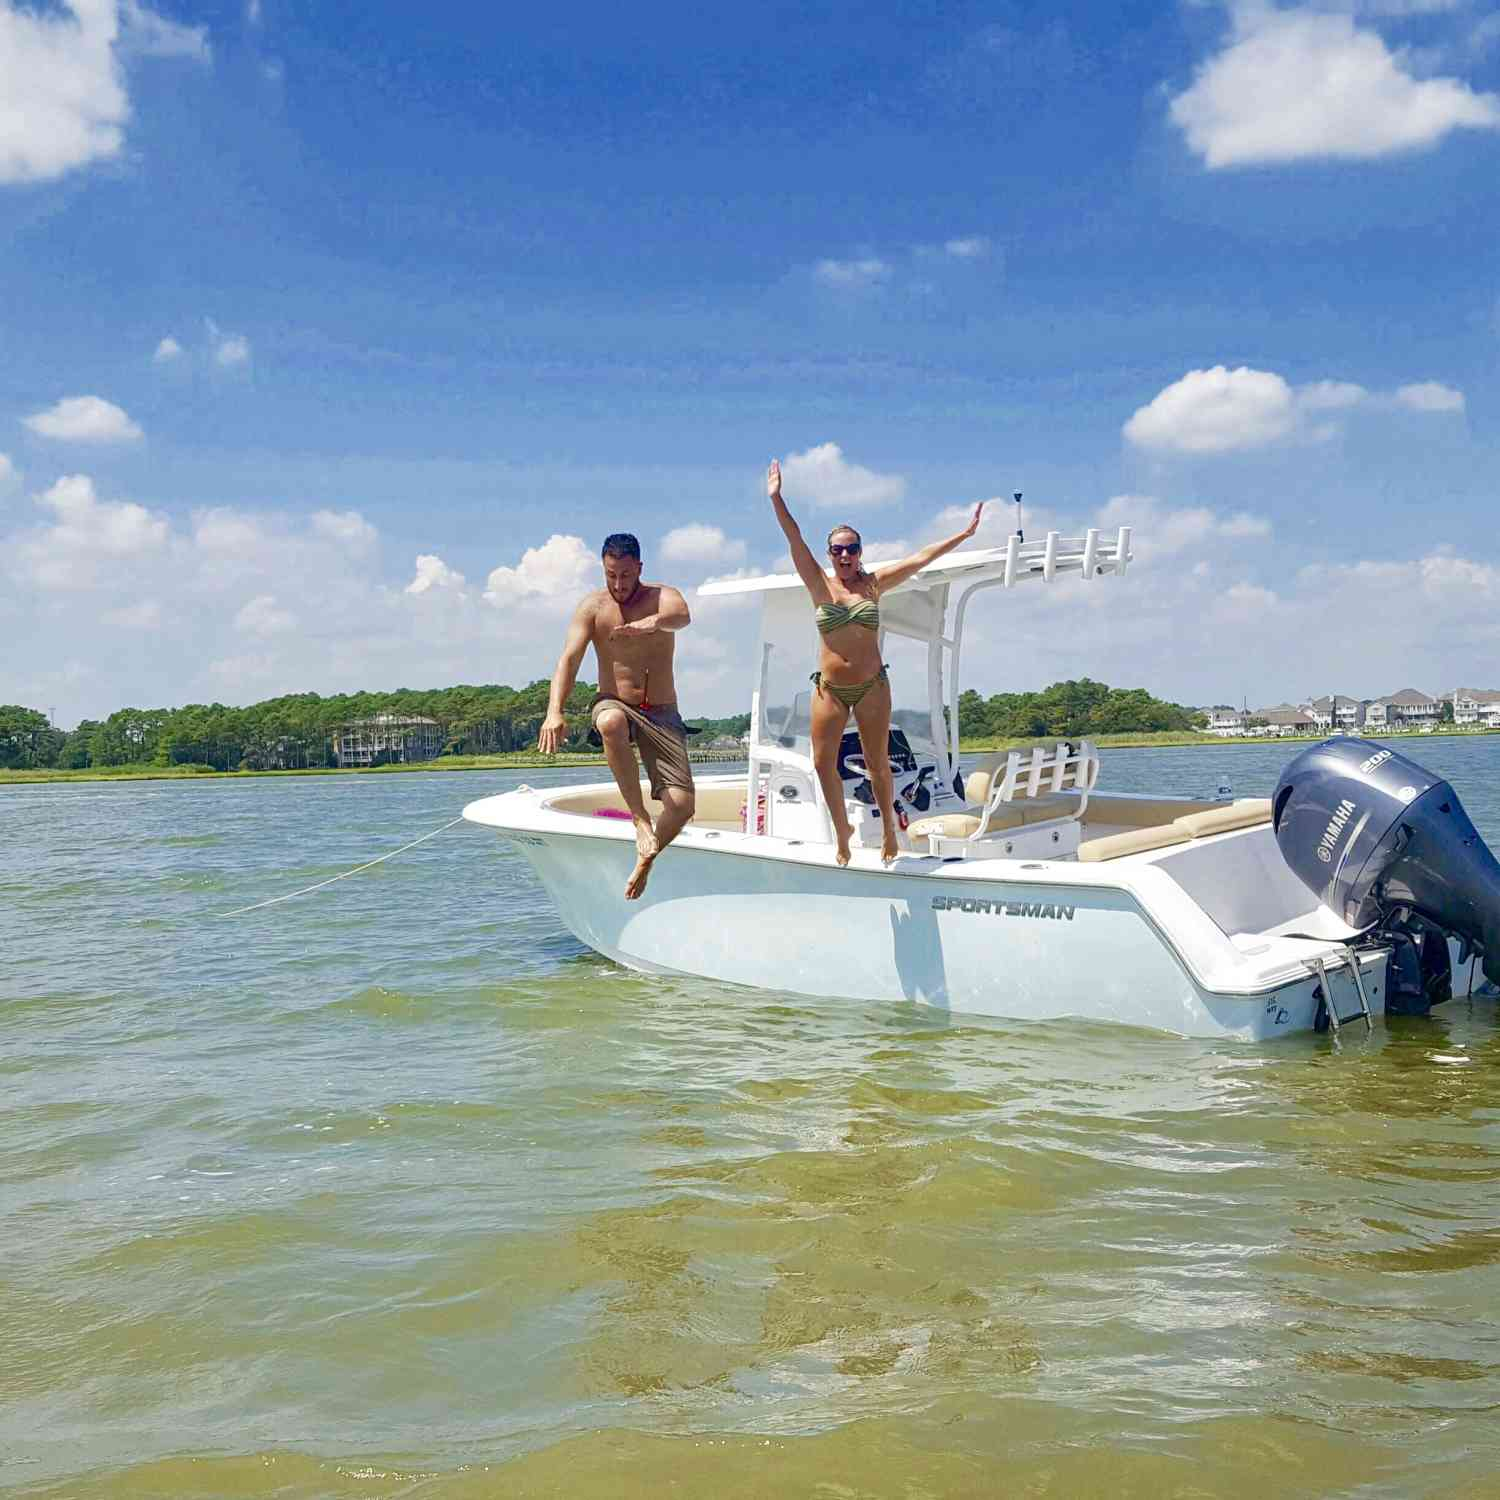 Title: Jump! - On board their Sportsman Heritage 231 Center Console - Location: Ocean city, Maryland. Participating in the Photo Contest #SportsmanAugust2018